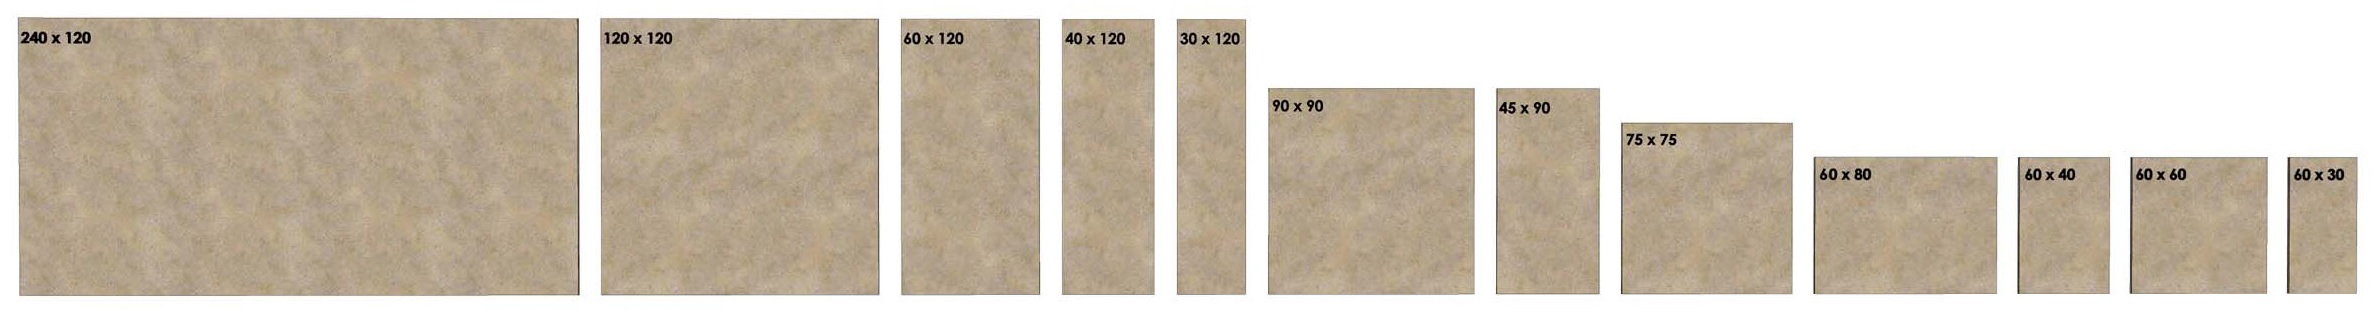 K2 New Tile Sizes - Slim